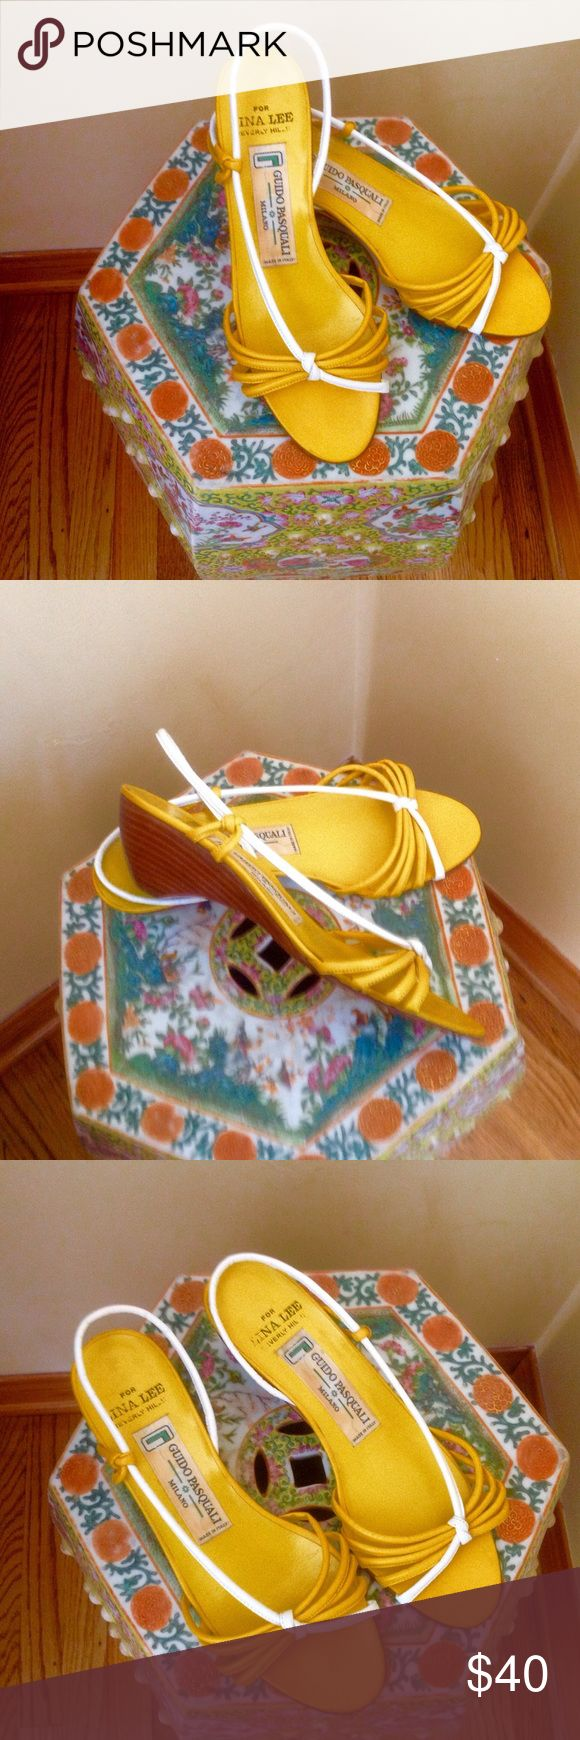 """Yellow and white striped sandals ❤️ gorgeous sandals made in Italy by Guido Pasquali exclusively for Lina Lee Beverly Hills! ❤️ 100% leather and like new! ❤️ Very comfortable and light! ❤️ Perfect for summer!👙☀️💐☘Hight of heels is 2.25"""" Guido Pasquali Shoes Sandals"""